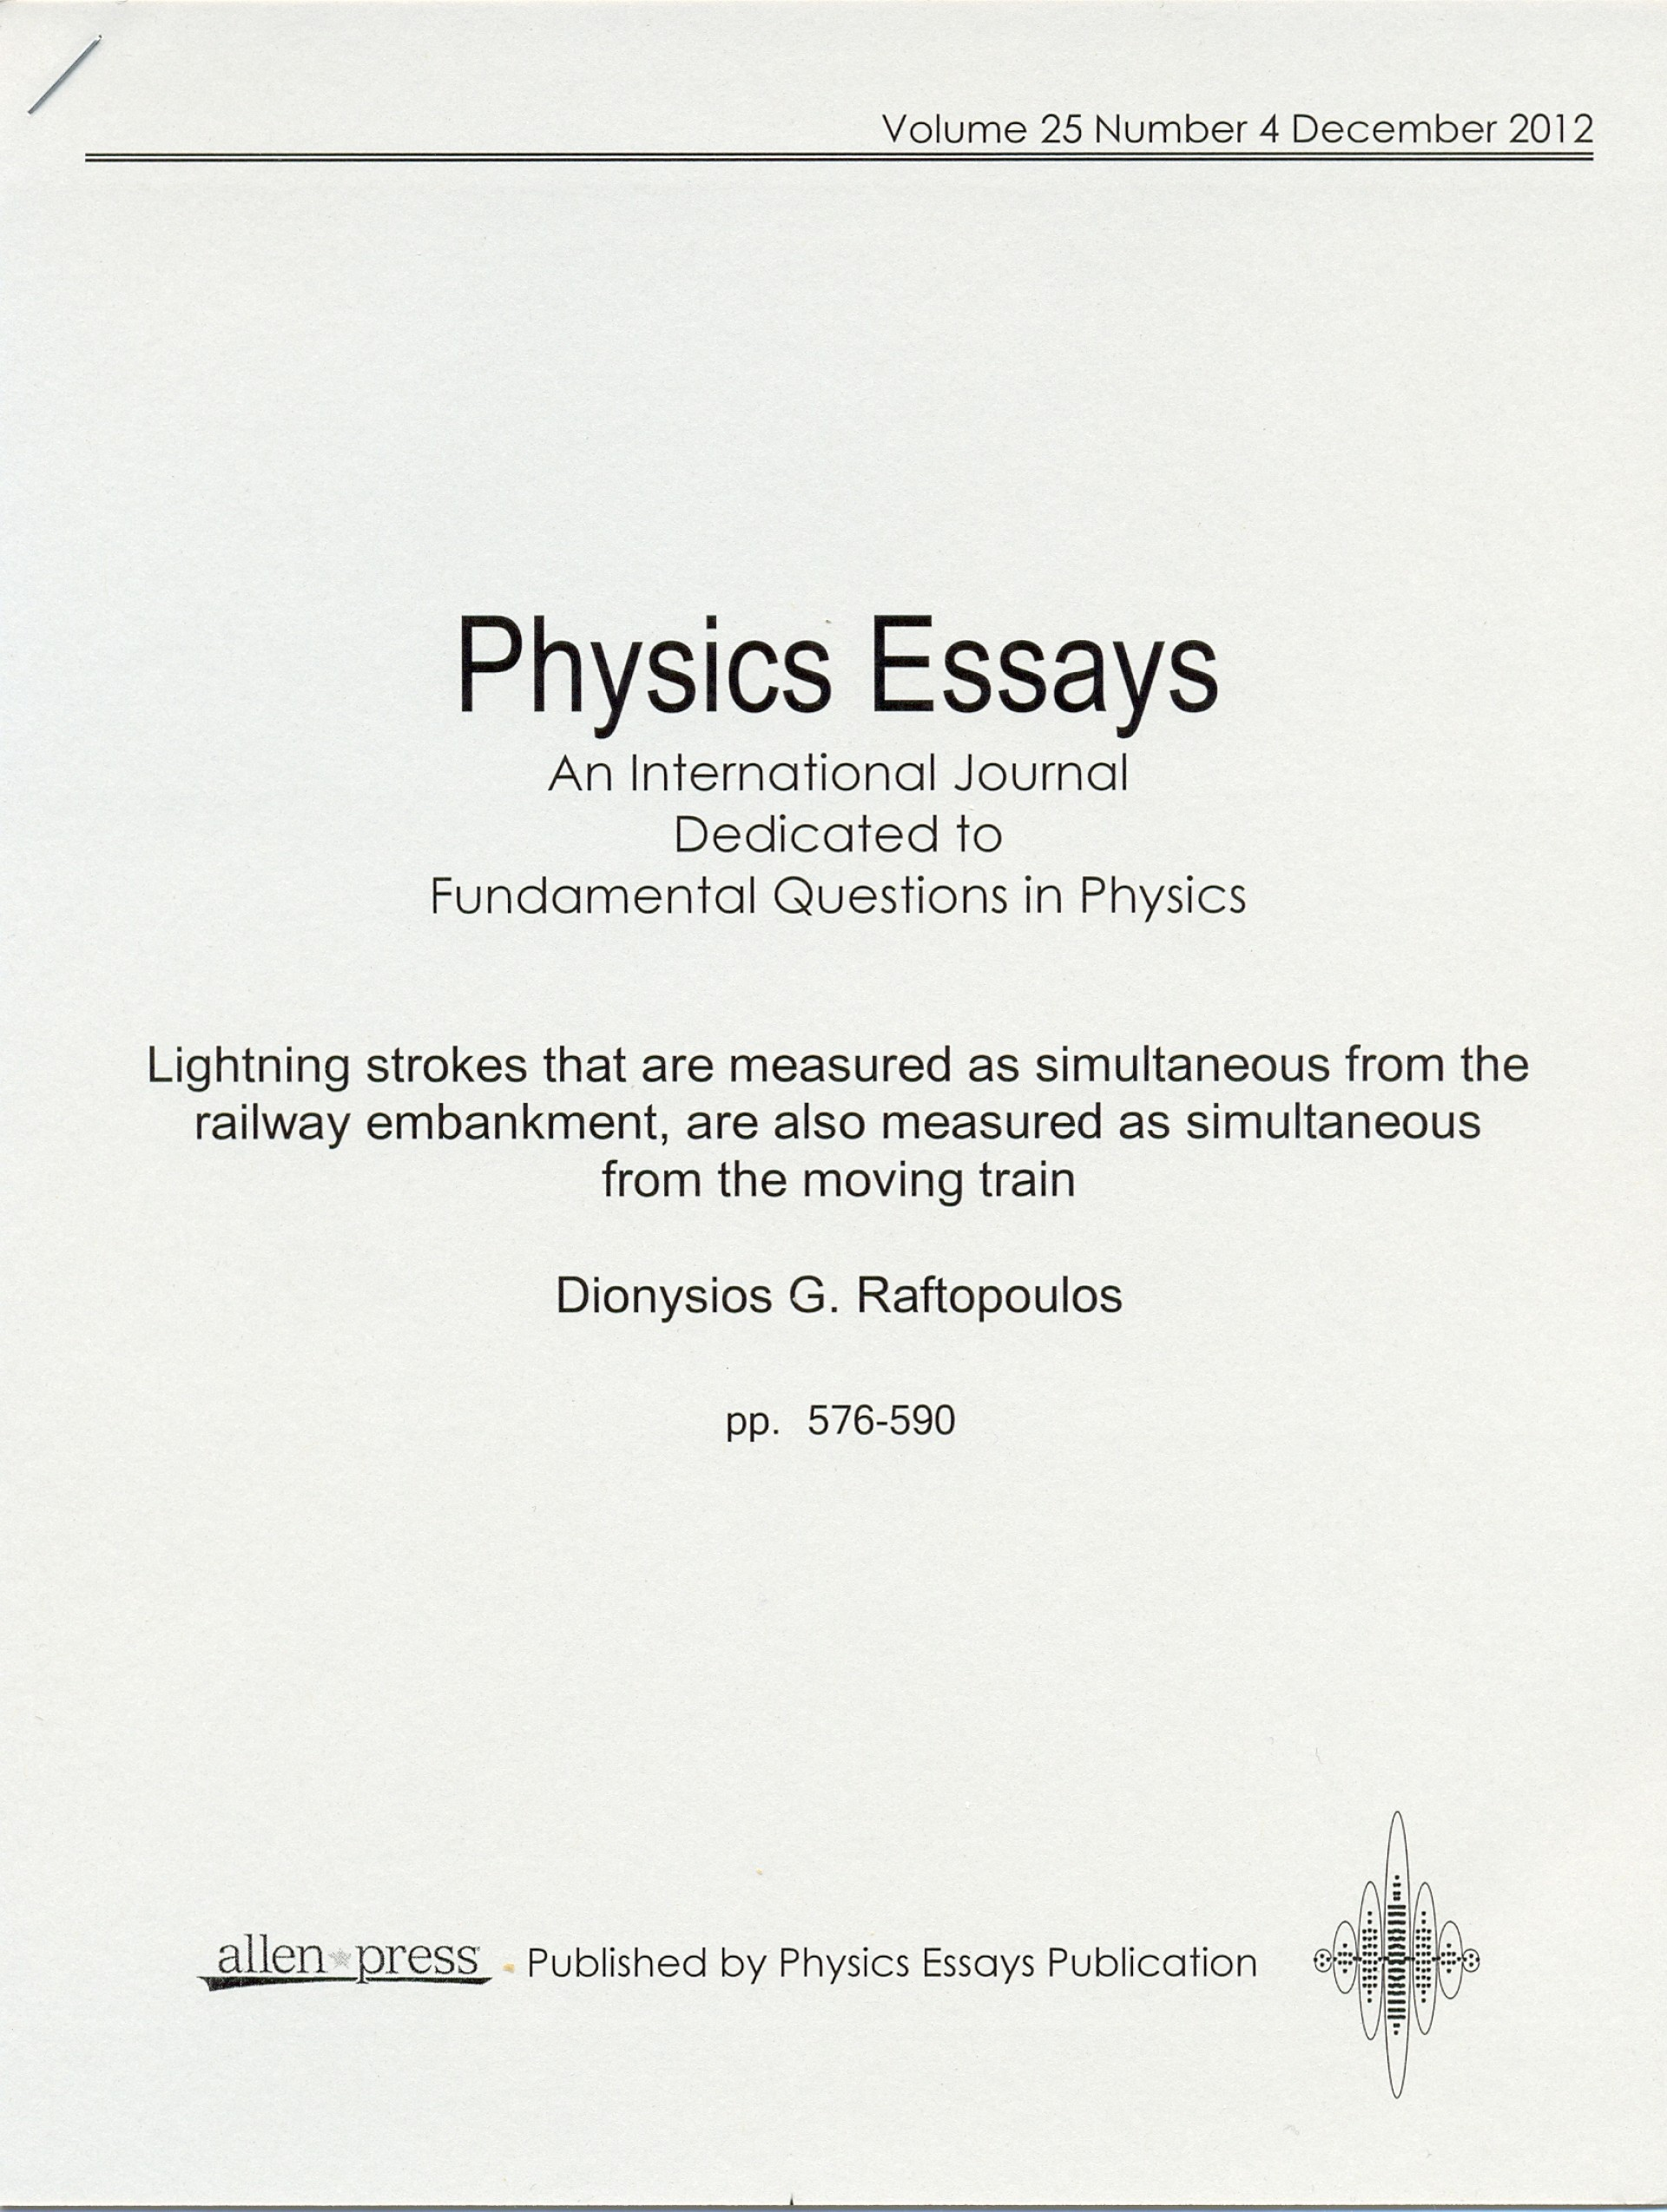 003 Physics Essays Cover202 Essay Rare Extended Topics Examples Wikipedia Crackpot 1920